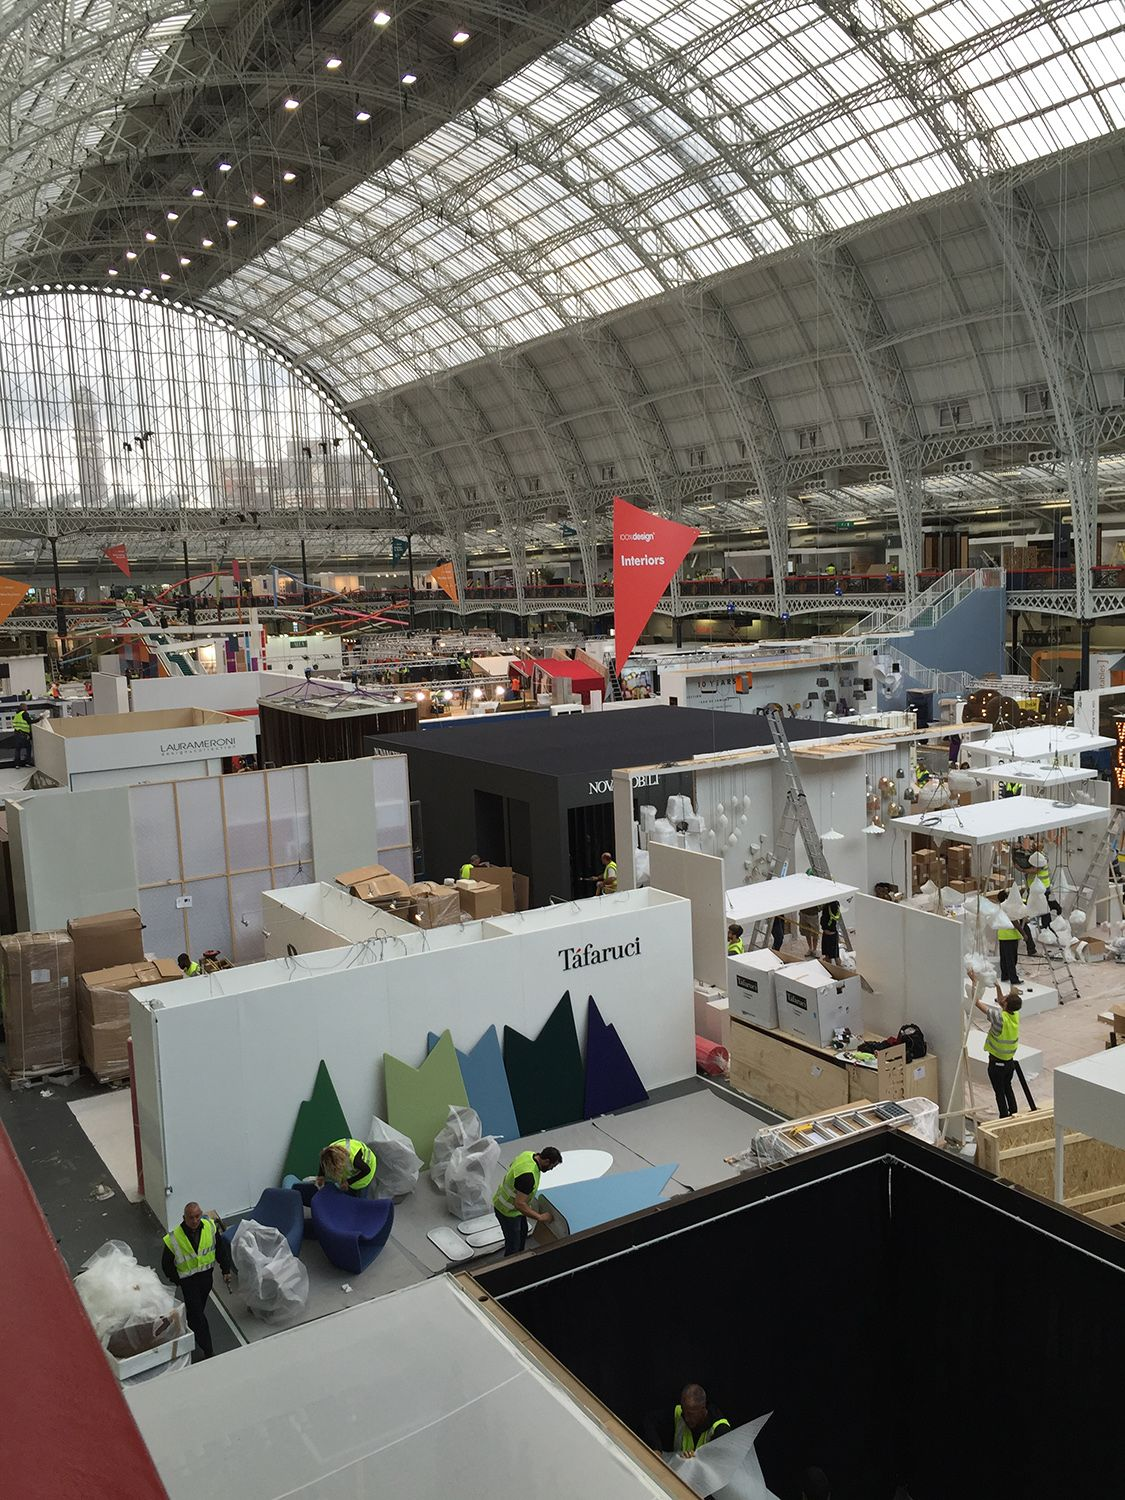 Pictures from setting up our booth at 100% Design in London. Come visit us at stand L222. ‪#‎100design‬ @designlondon